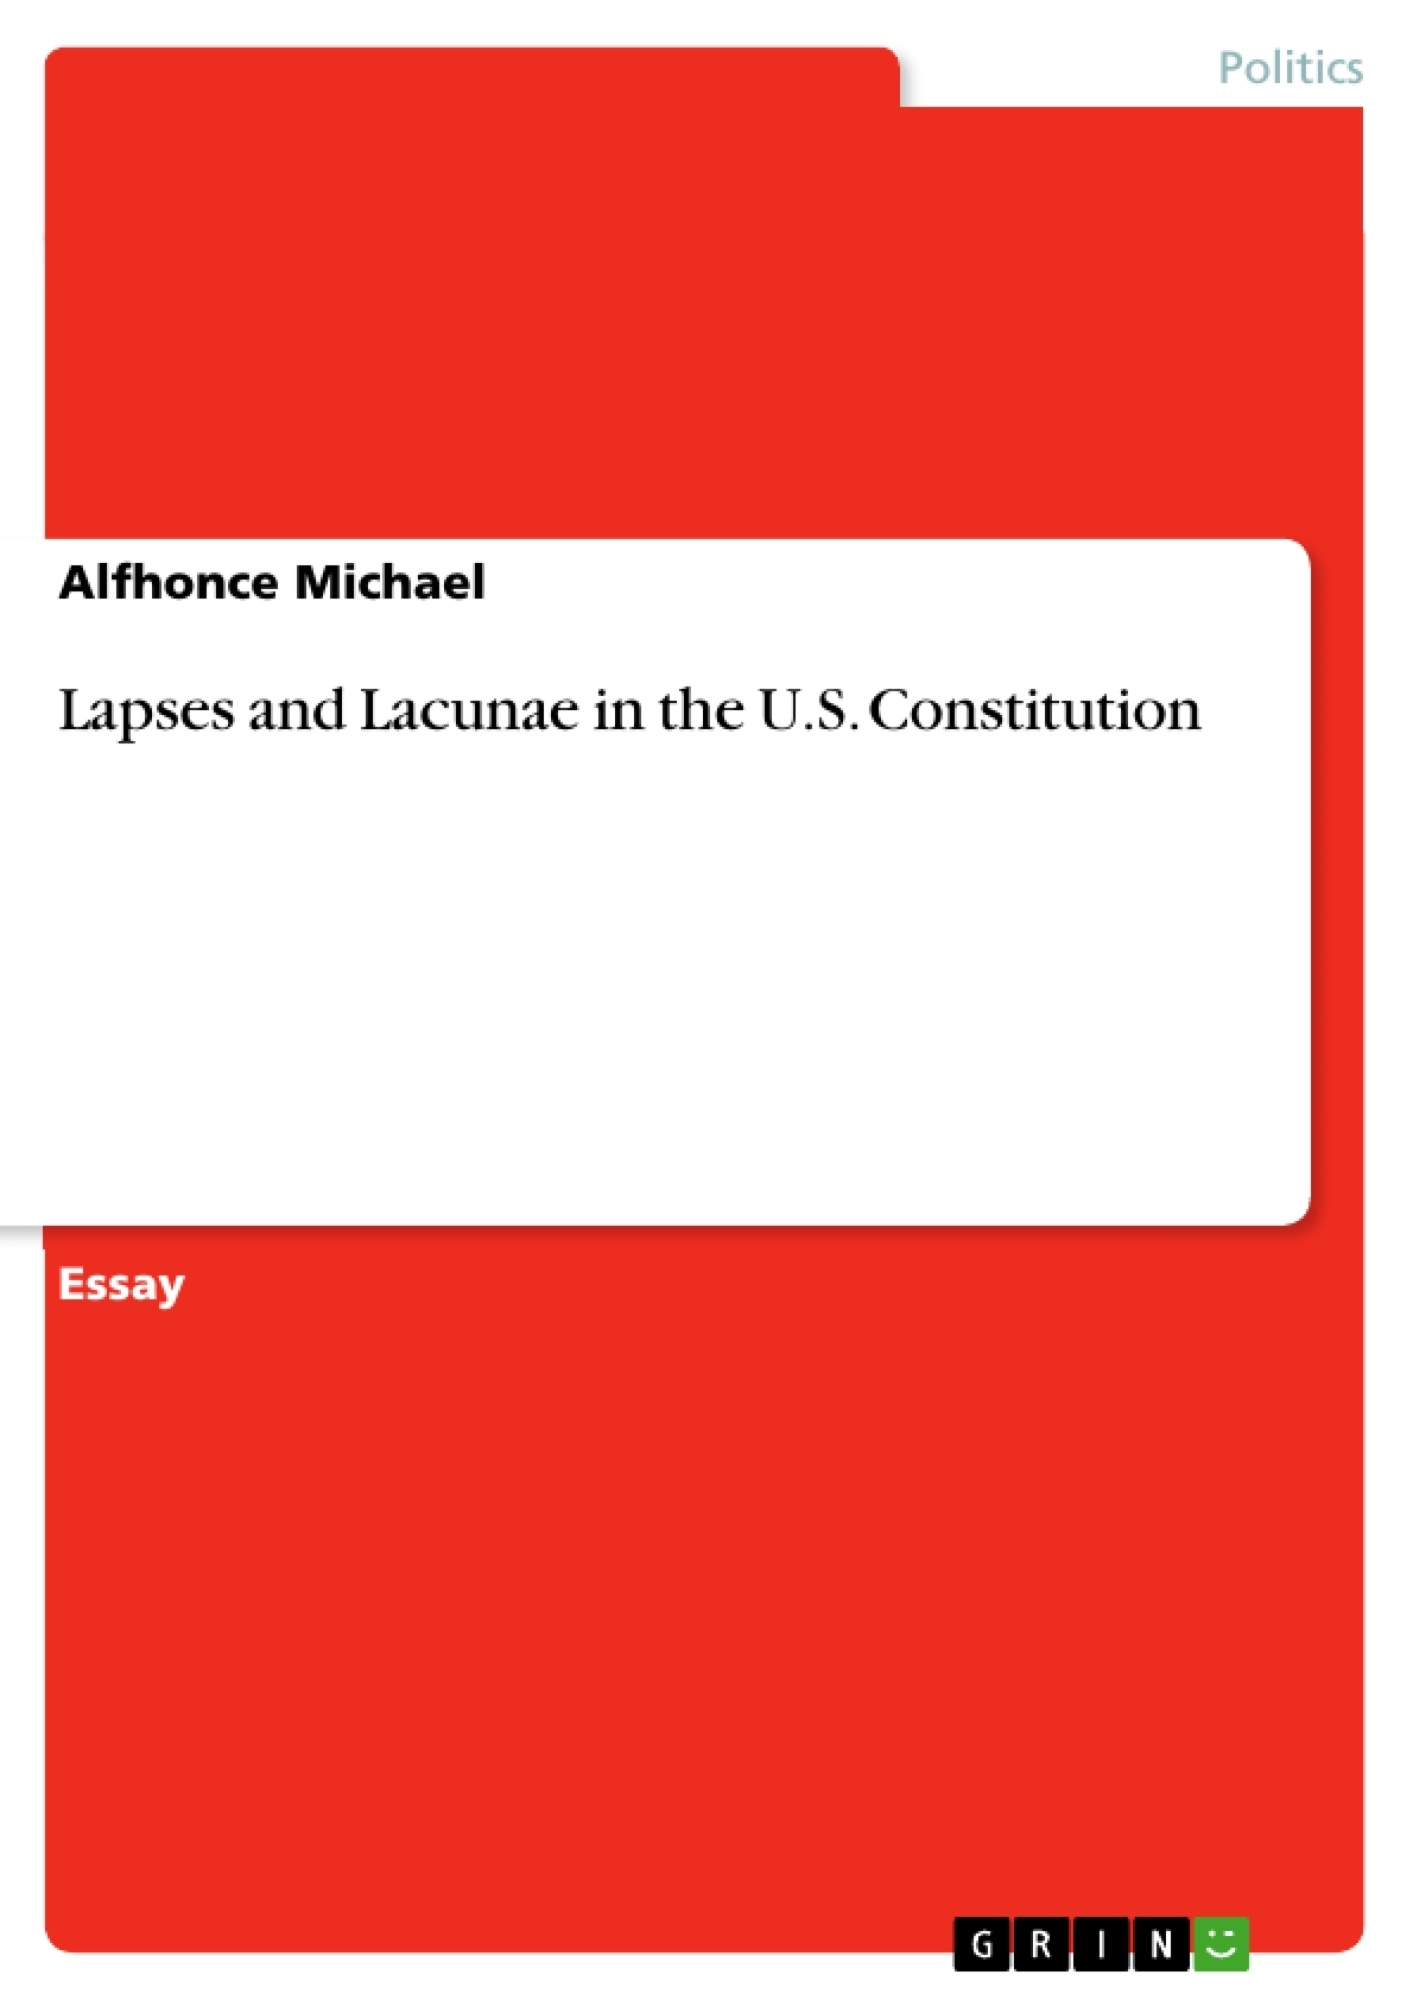 Title: Lapses and Lacunae in the U.S. Constitution